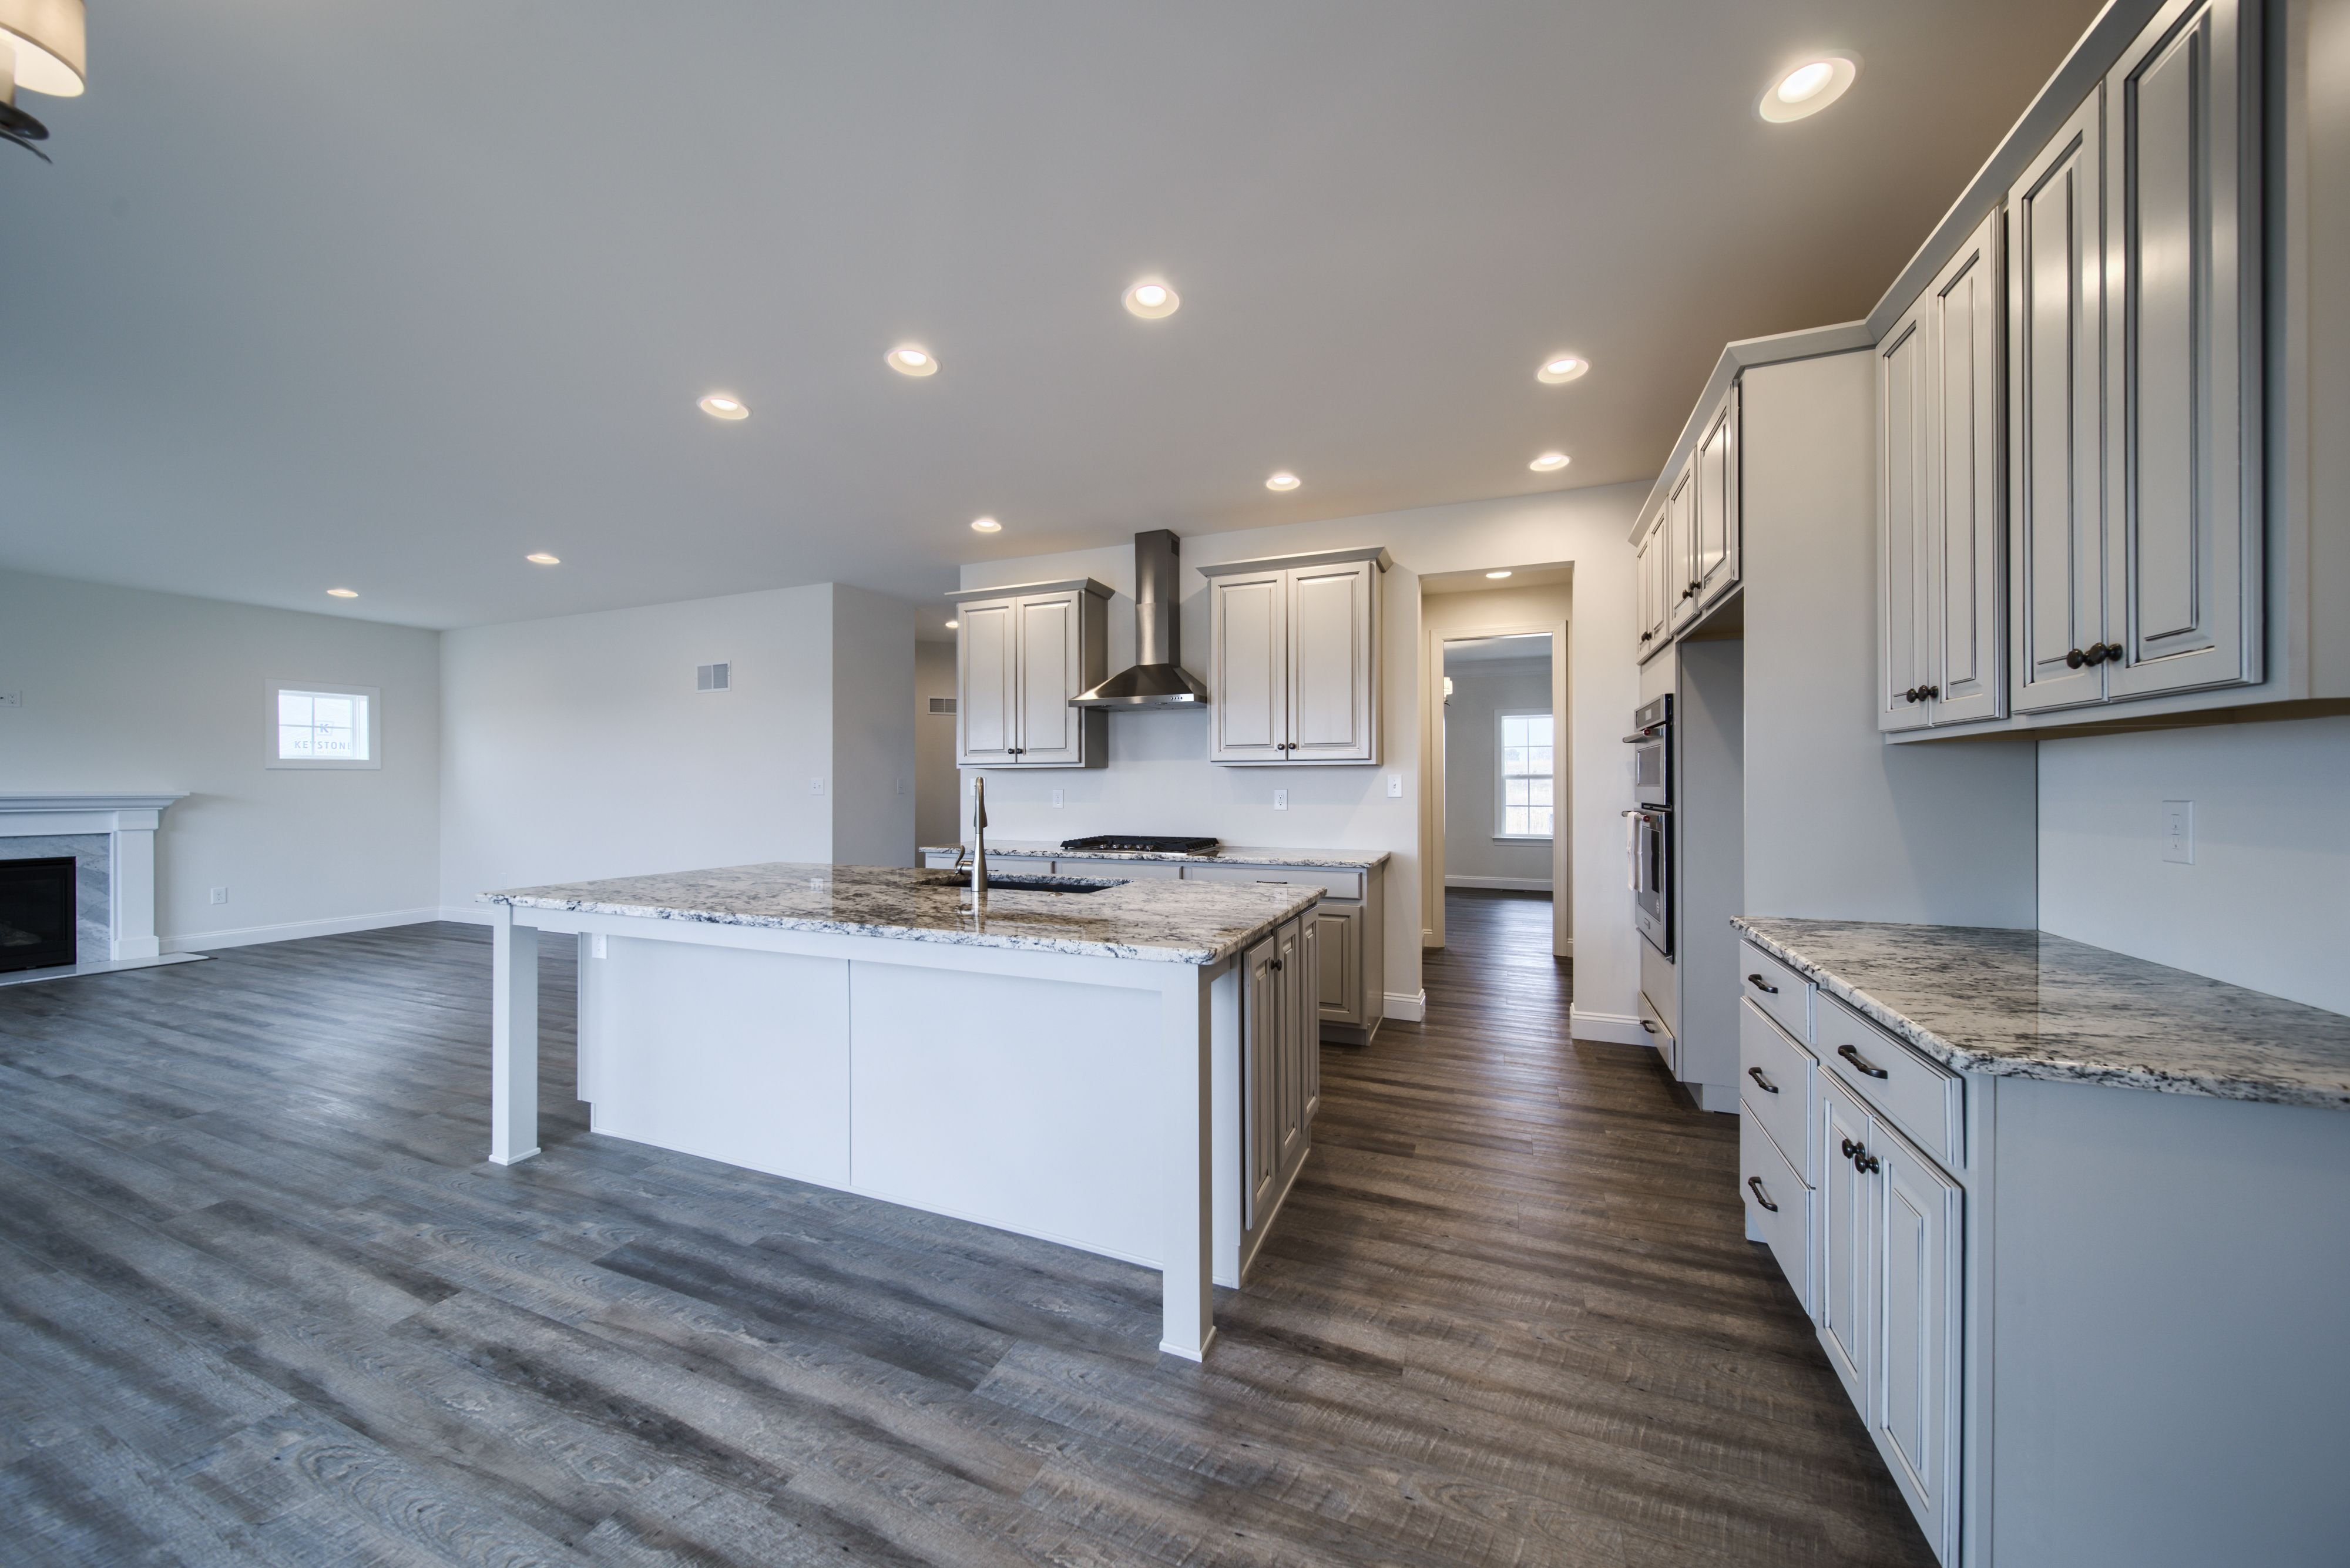 Kitchen featured in the Oxford Farmhouse By Keystone Custom Homes in Harrisburg, PA